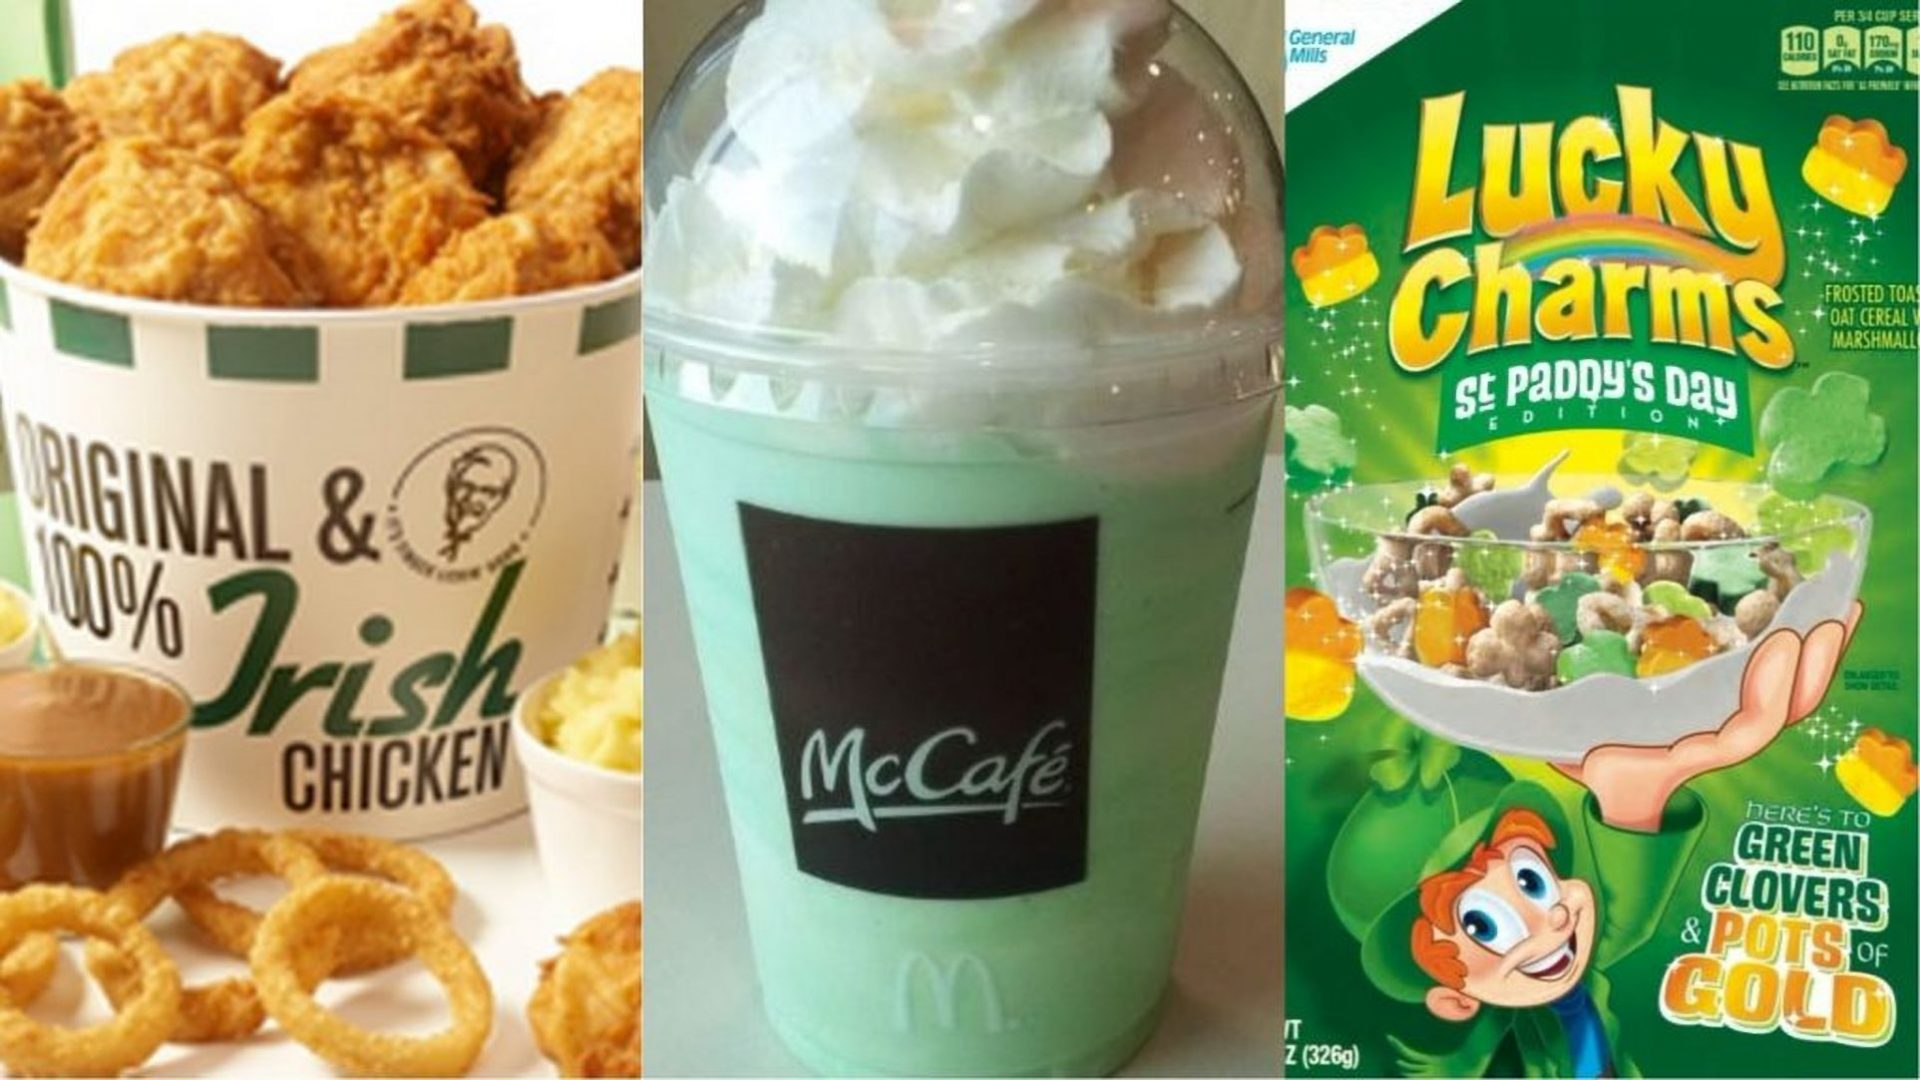 St. Patrick's Day food and drink.